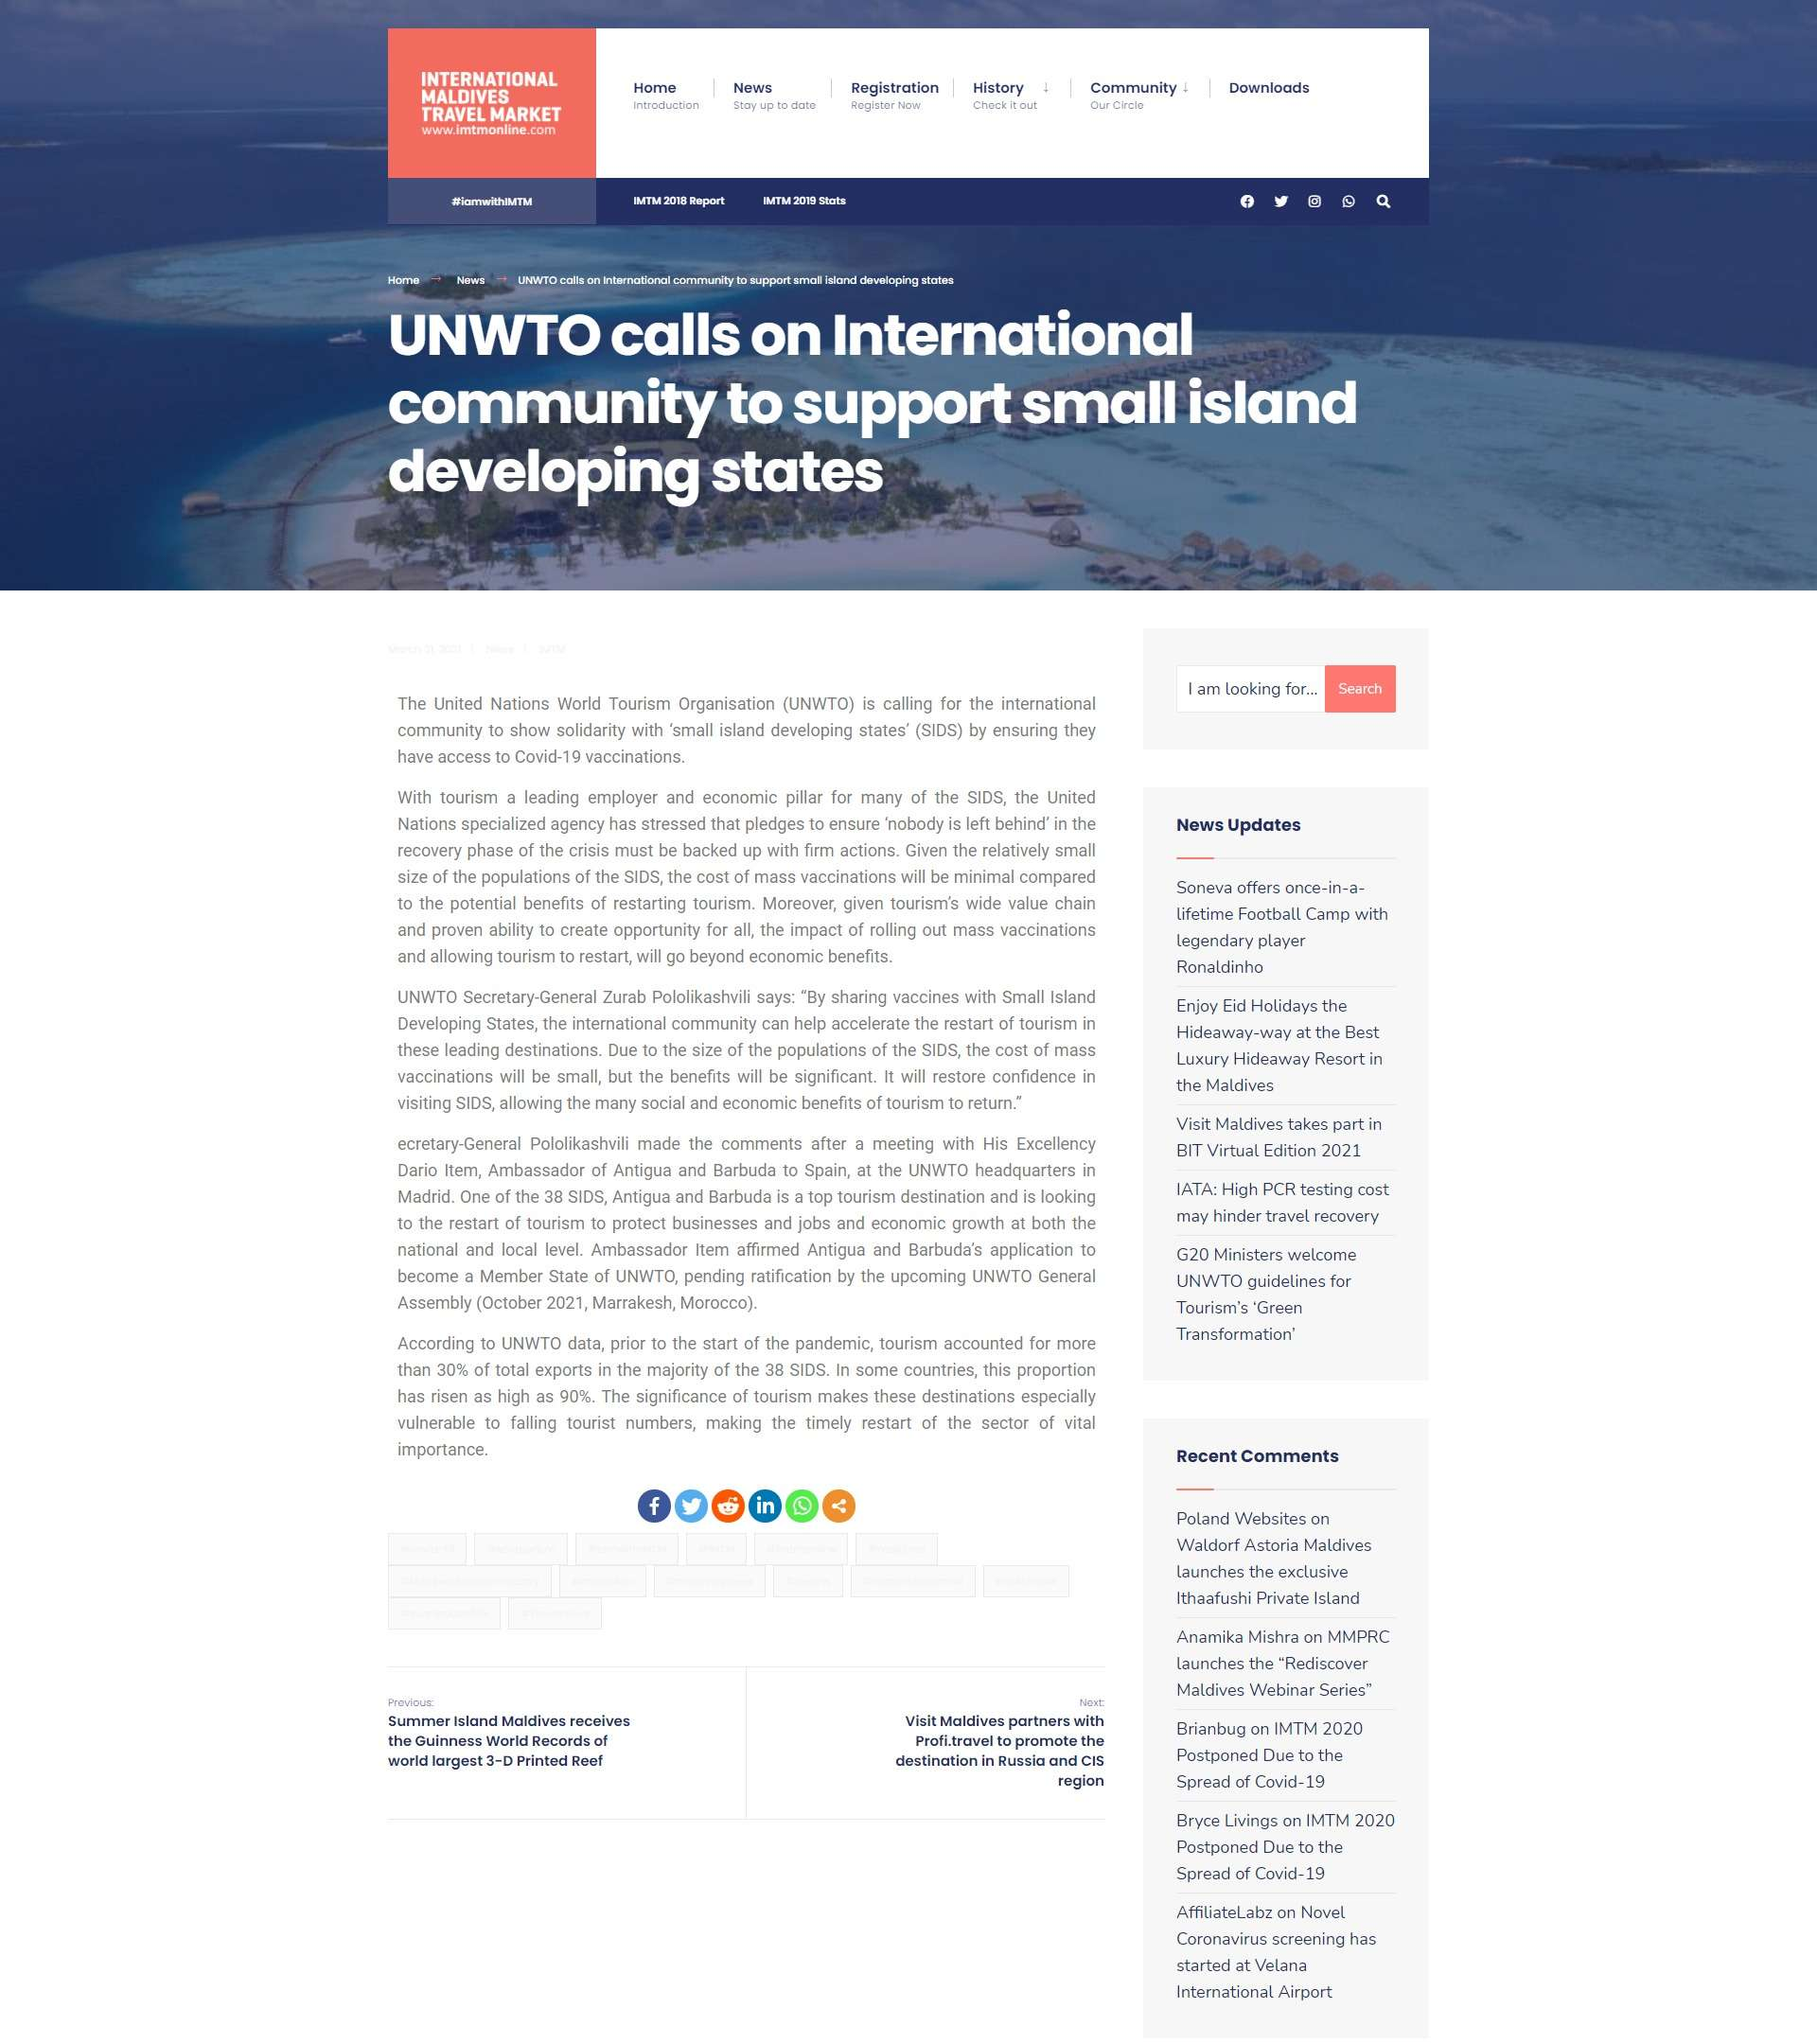 UNWTO calls on International community to support small island developing states